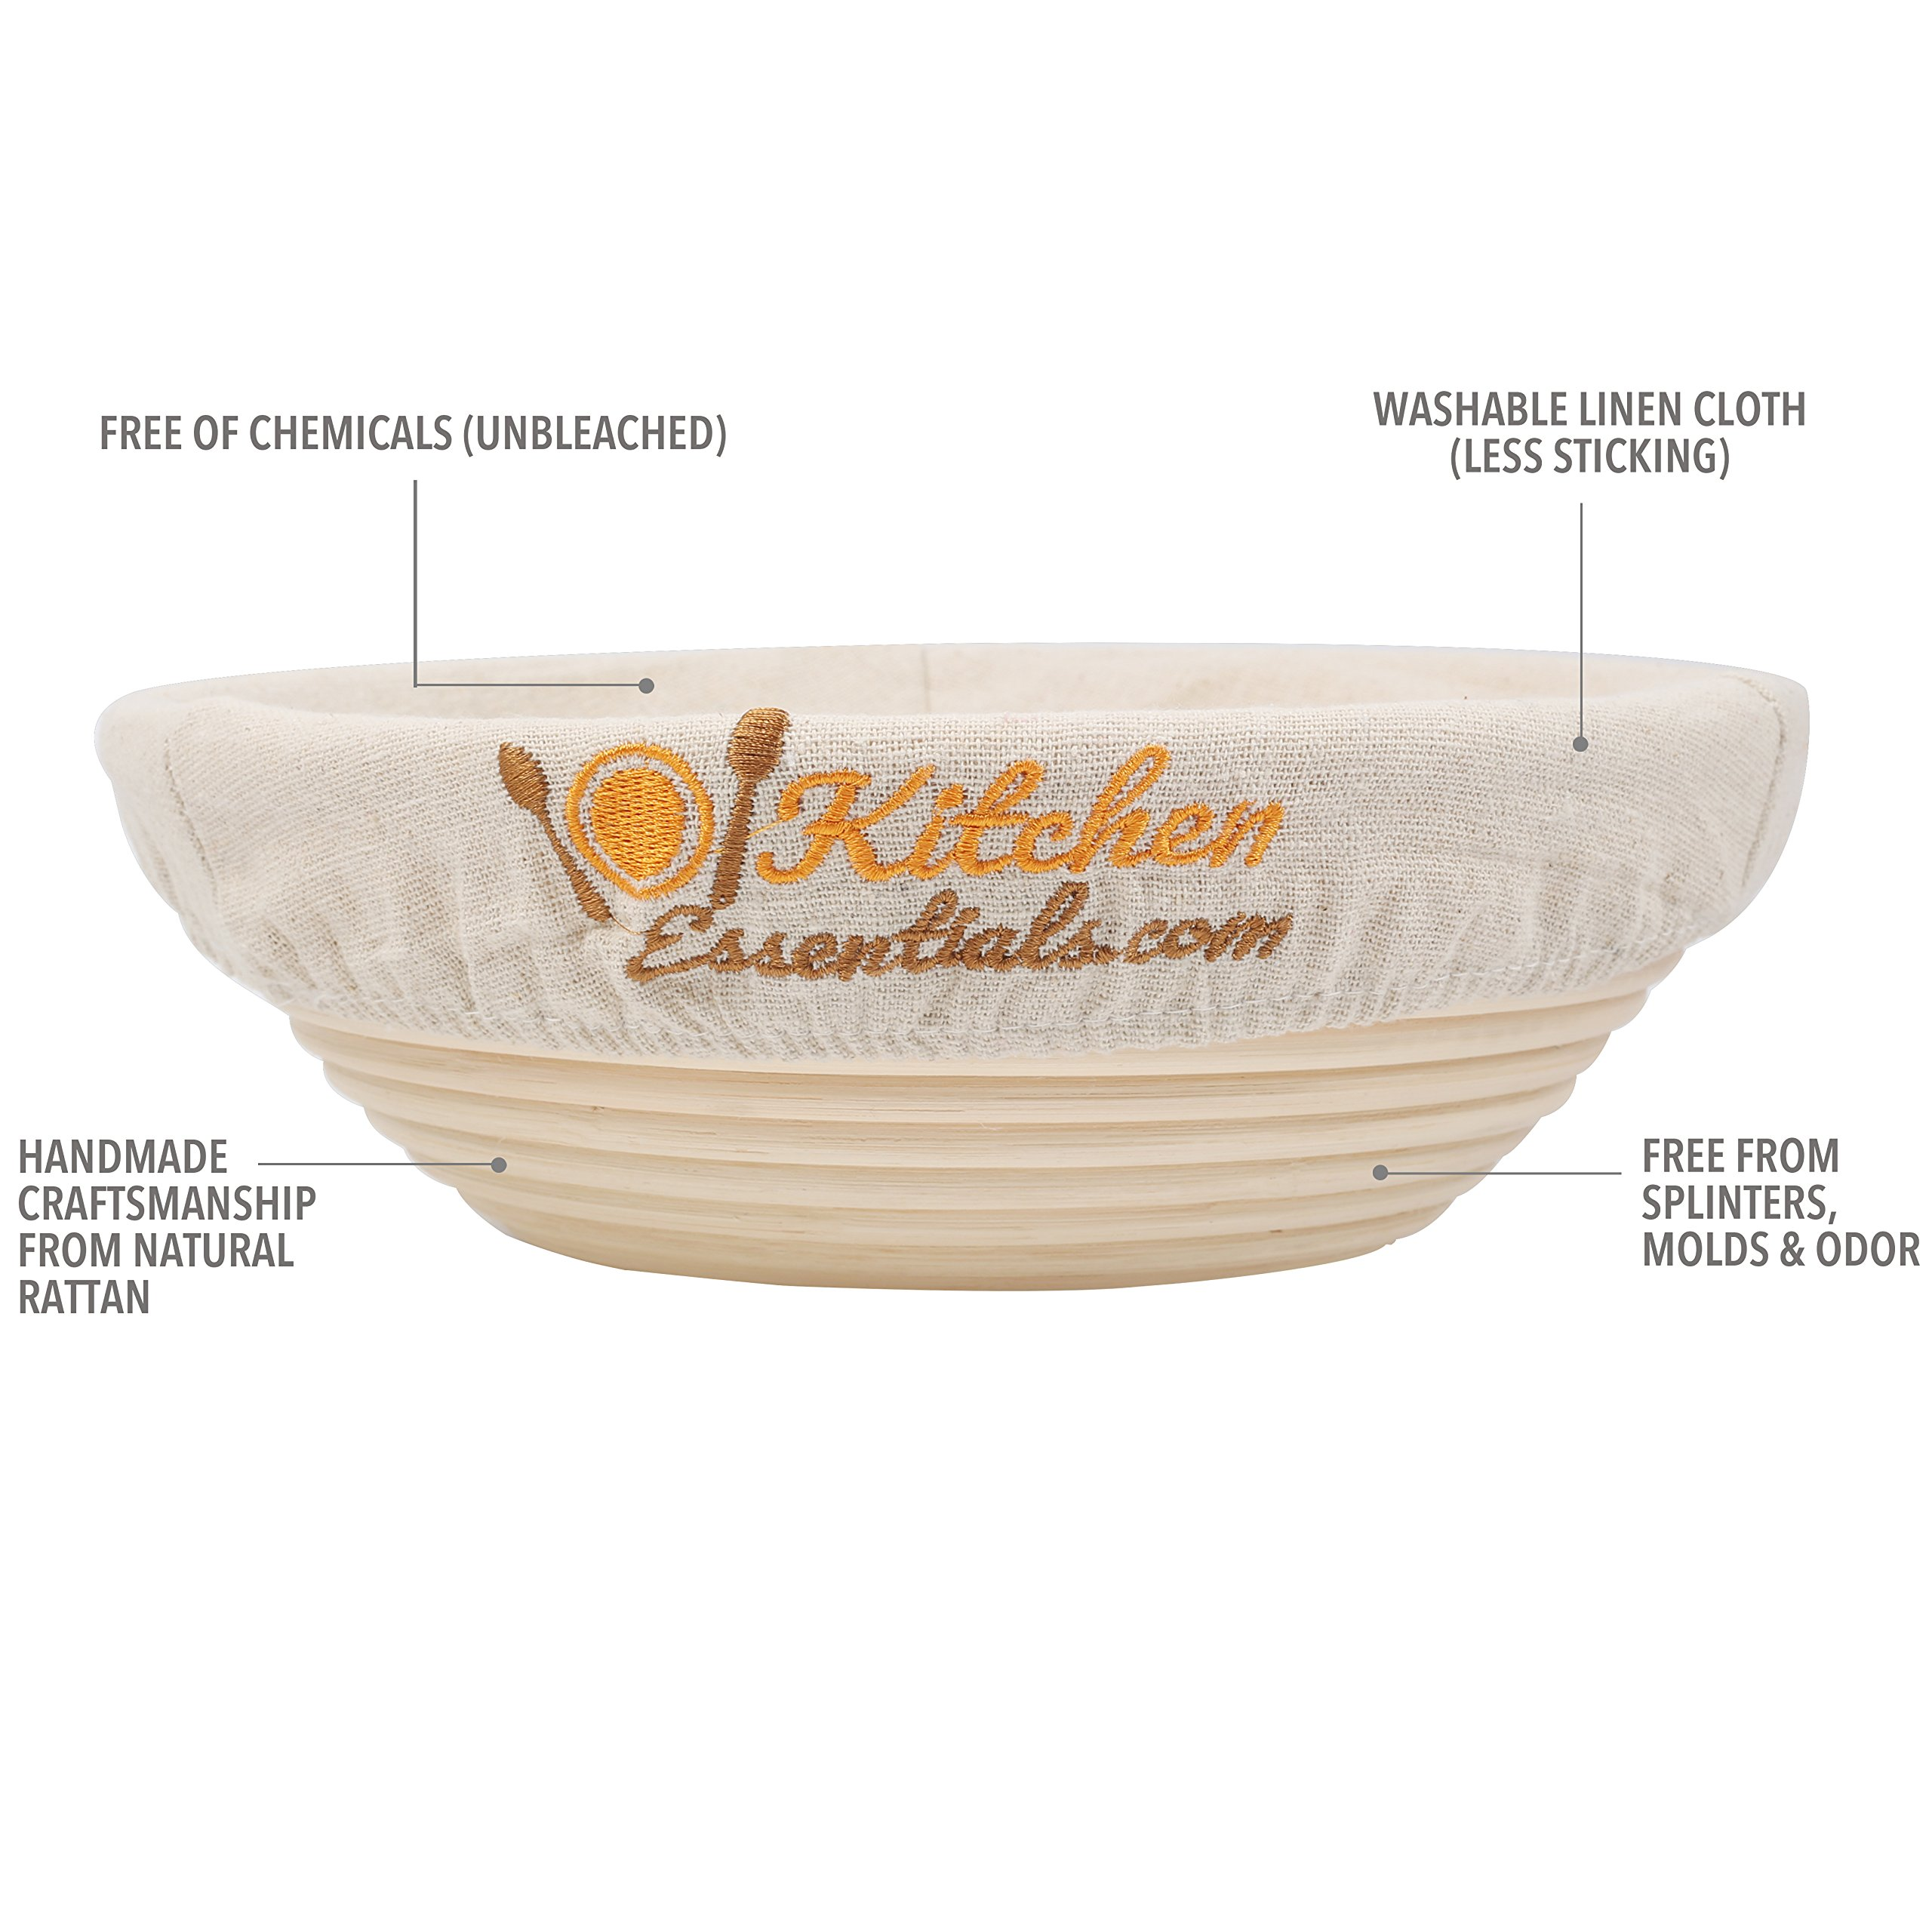 4-In-1 Set of Banneton Bread Proofing Basket (10 Inch) + Liner + Scraper + Linen Bag - Round Brotform Proofing Basket/Banetton Brotform Bowl - Best for Artisan Bread Making Sourdough, Rye & Others by 101KitchenEssentials (Image #5)